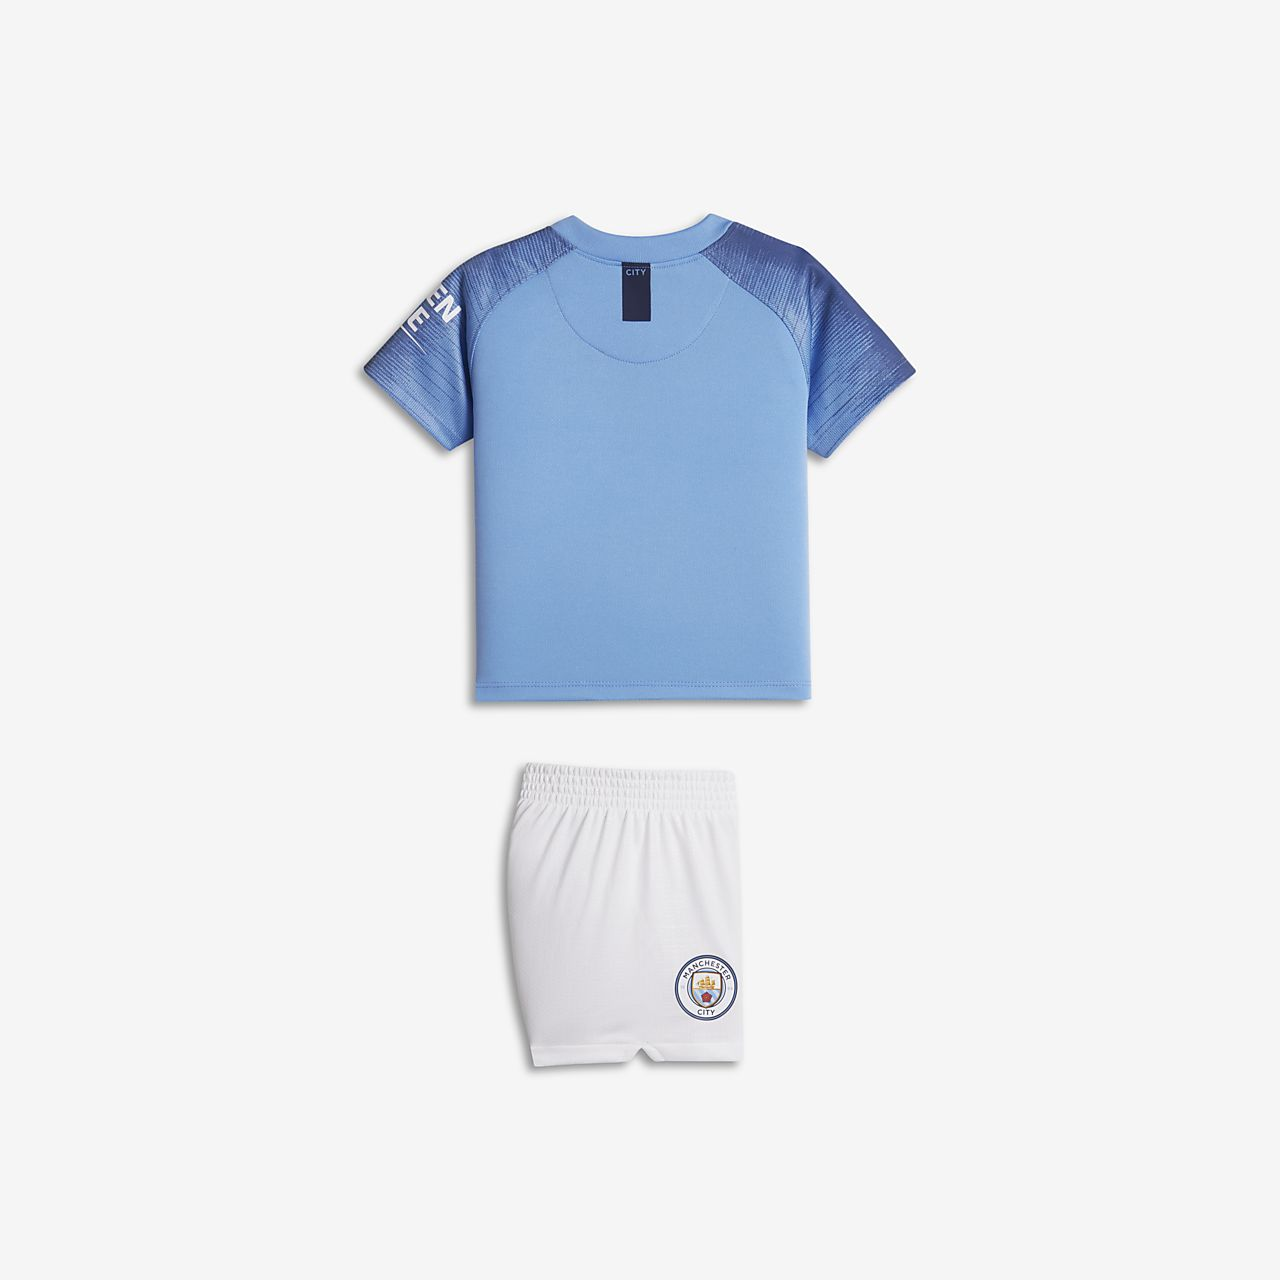 28ff5361ce5 2018 19 Manchester City FC Stadium Home Baby   Toddler Football Kit ...